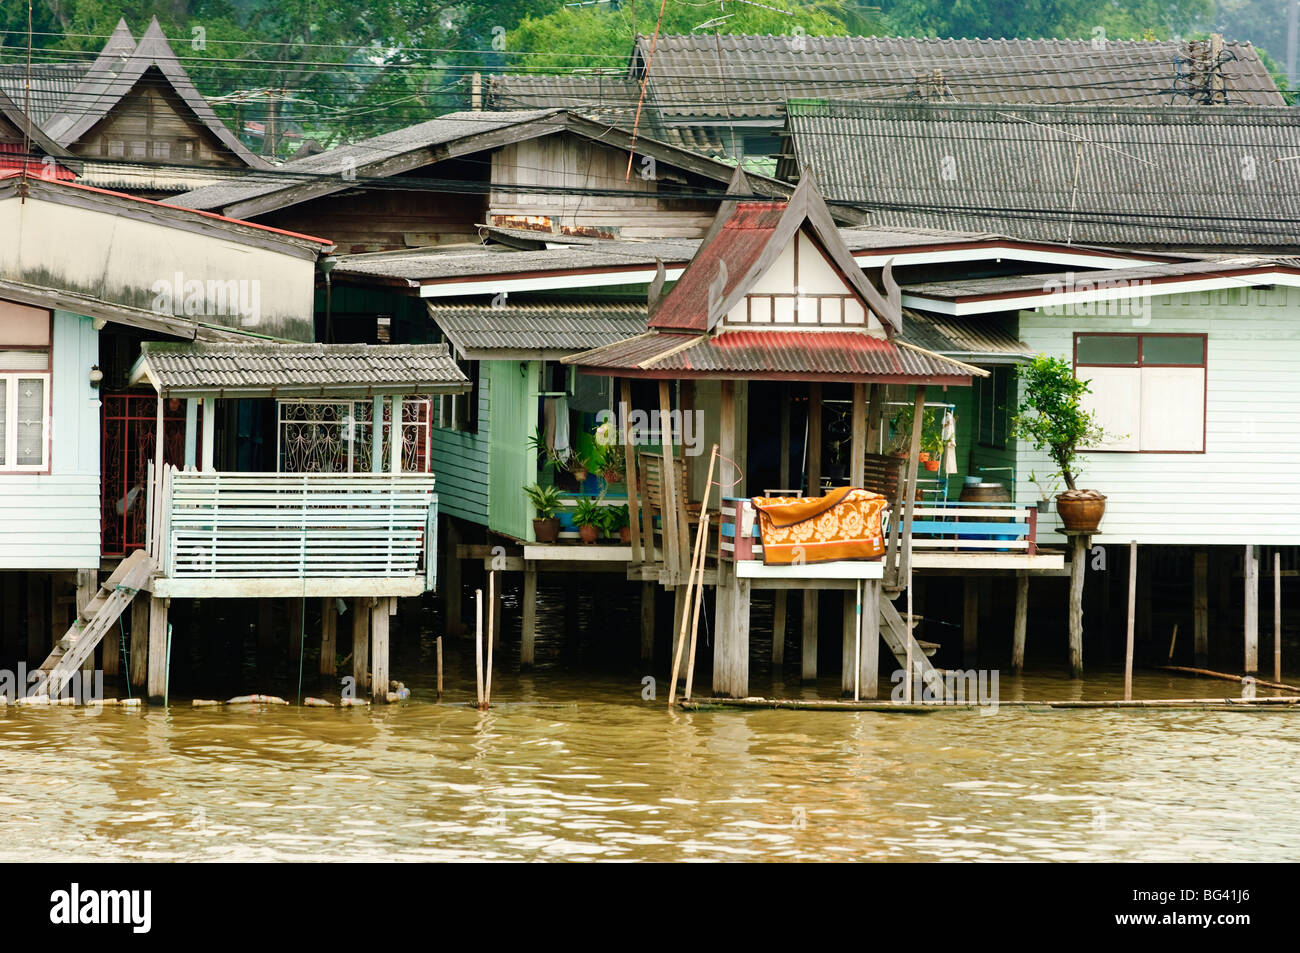 h user auf dem chao phraya river in bangkok thailand s dostasien asien stockfoto bild. Black Bedroom Furniture Sets. Home Design Ideas